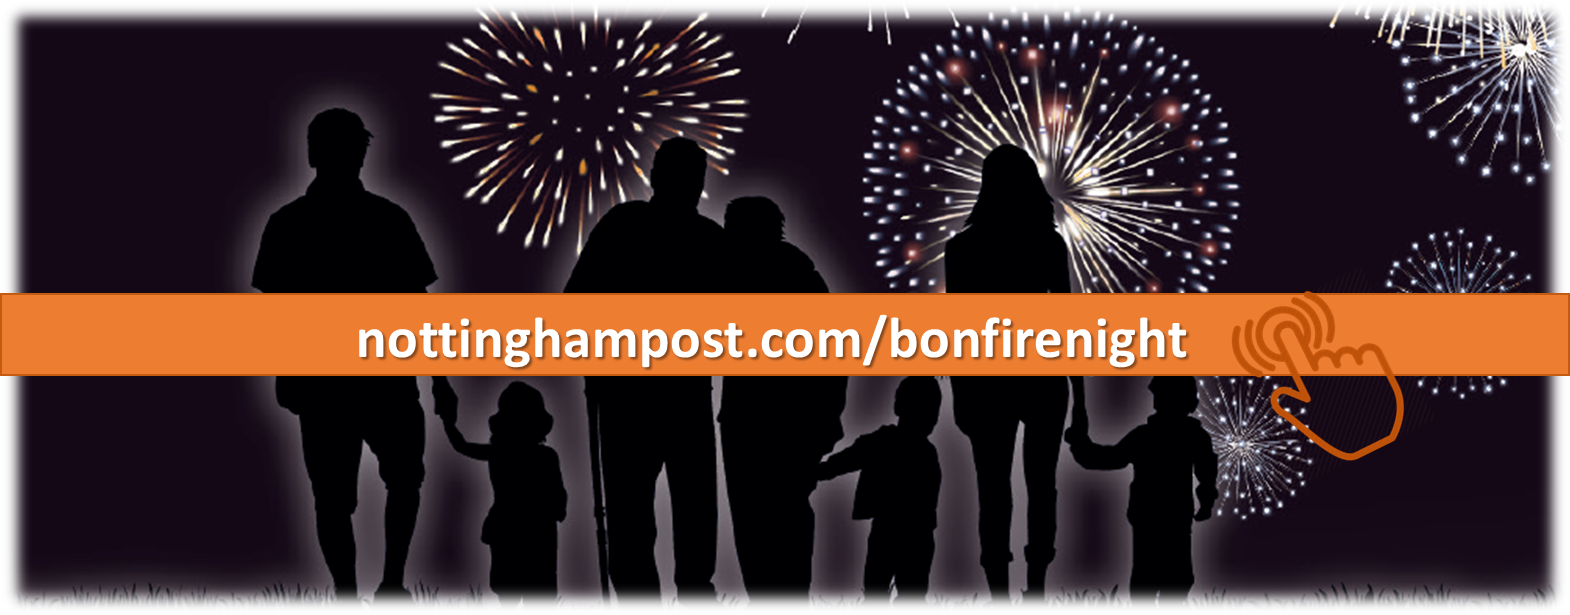 click to discover the best local bonfire night displays